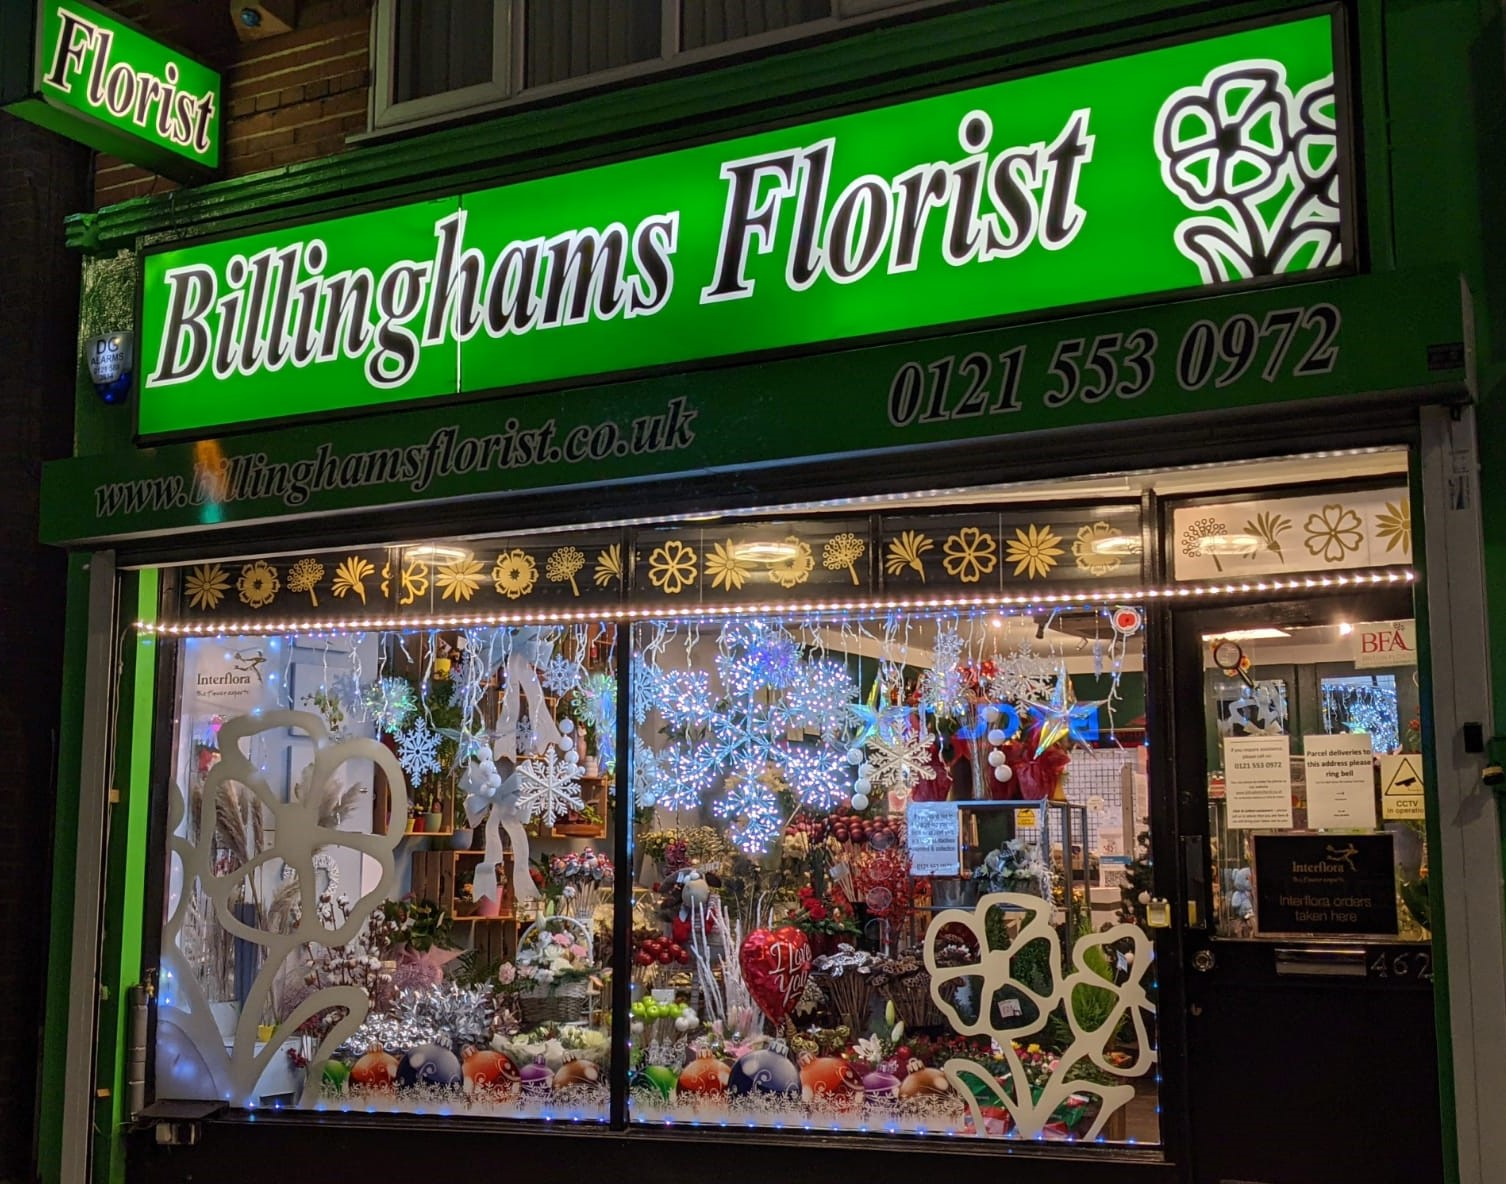 Celebrating Our Small Businesses – Billingham's Florist, Carters Green